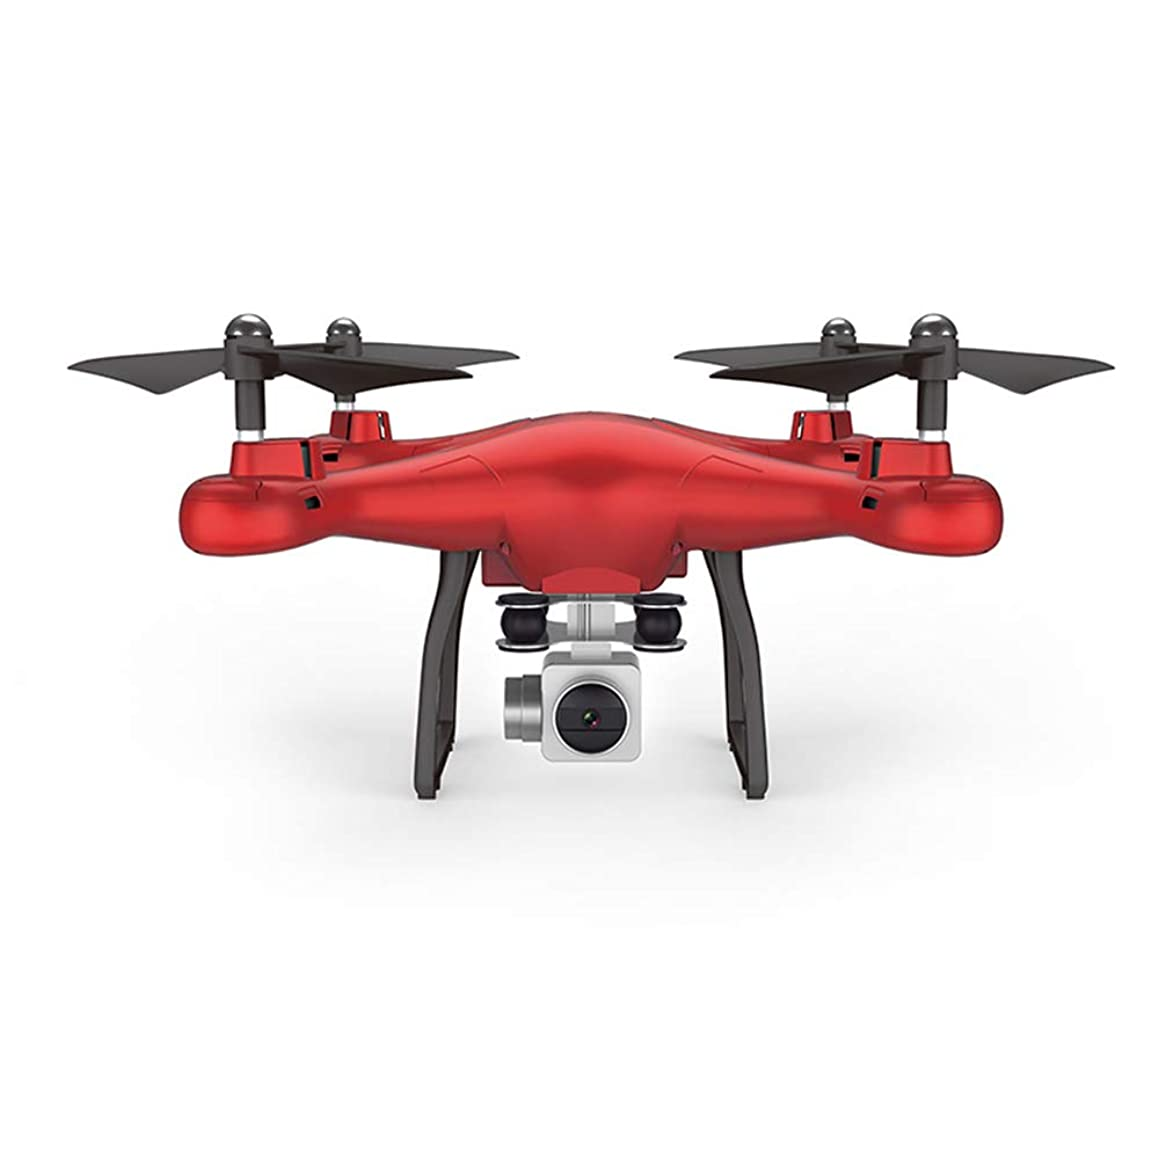 Drone with Camera, FPV Rc Drone 720p Camera 120 Wide Angle WiFi Quadcopter with Altitude Hold Headless Mode,